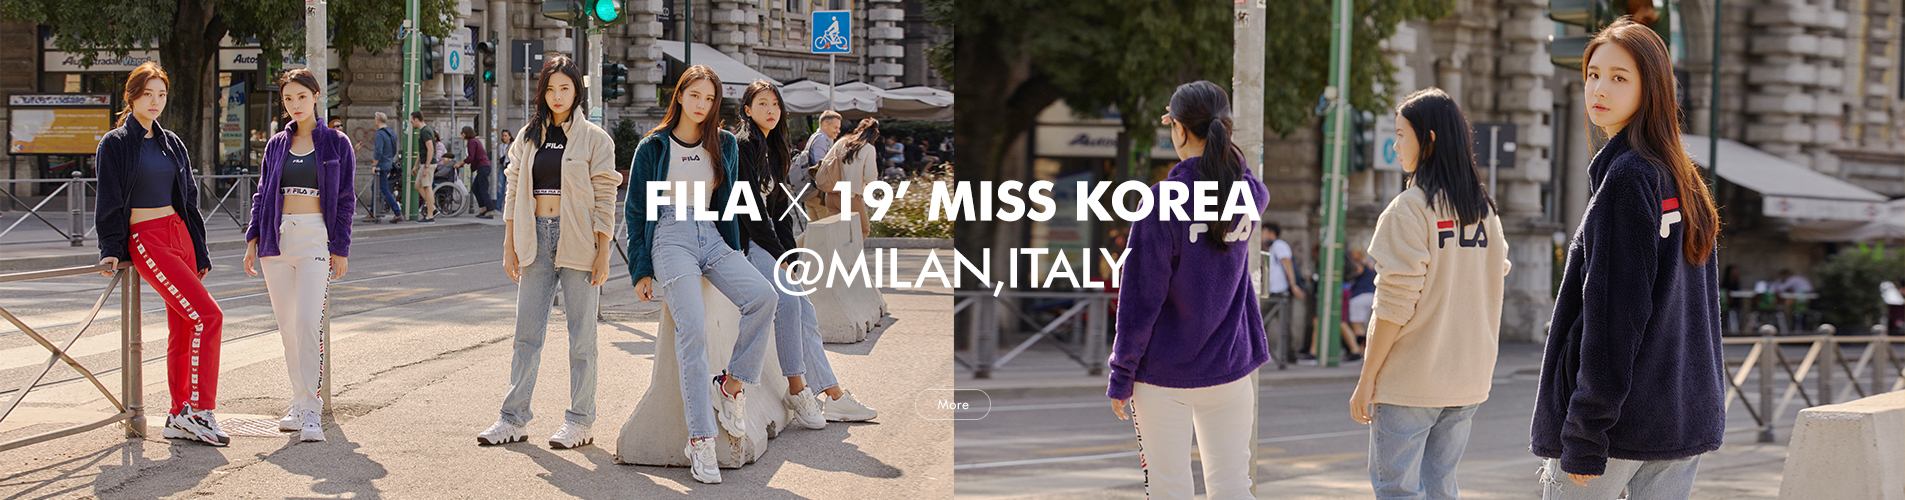 FILA X 19` MISS KOREA